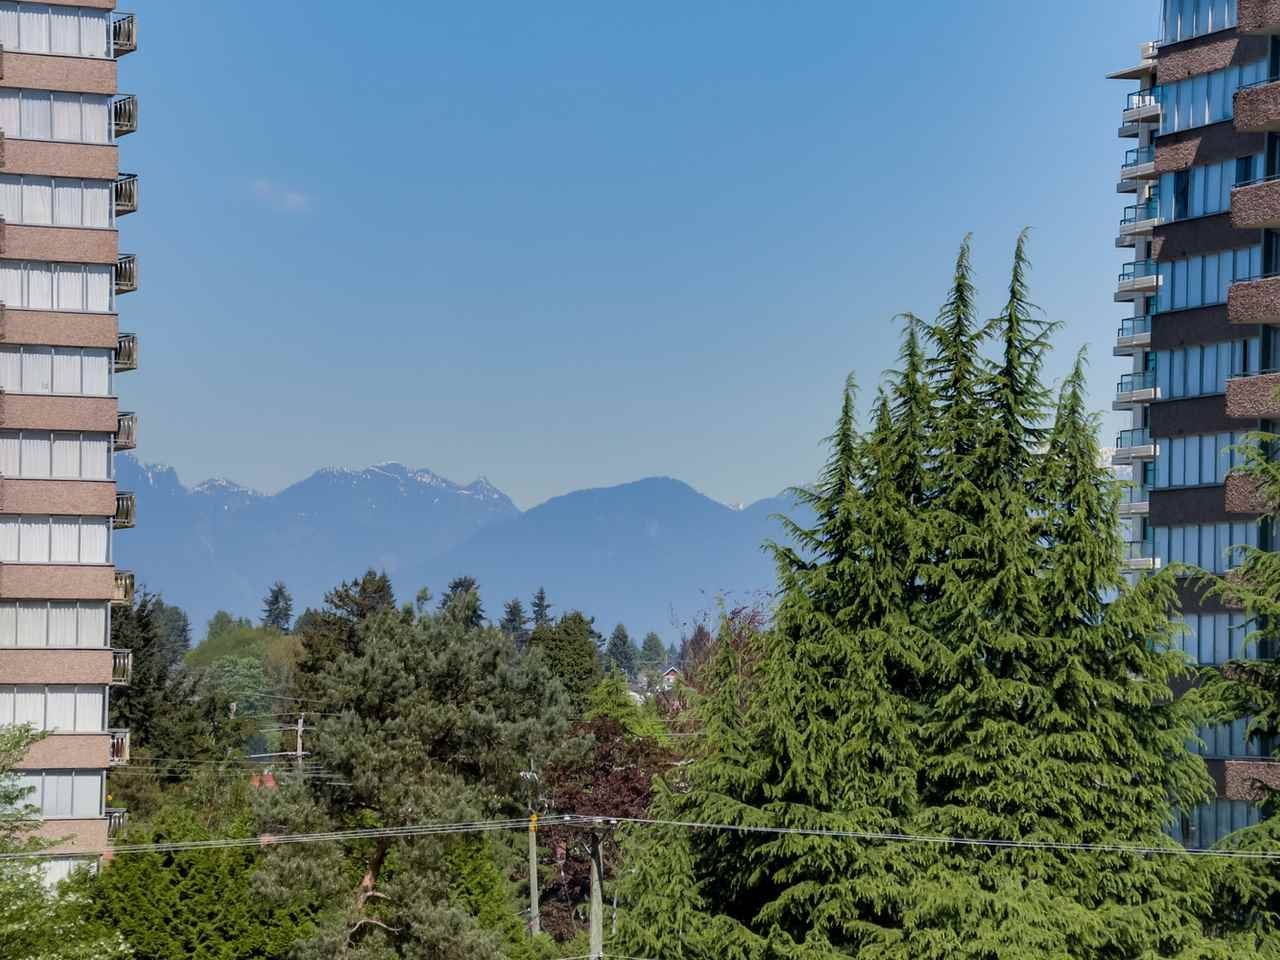 Photo 9: Photos: 403 728 PRINCESS Street in New Westminster: Uptown NW Condo for sale : MLS®# R2061685